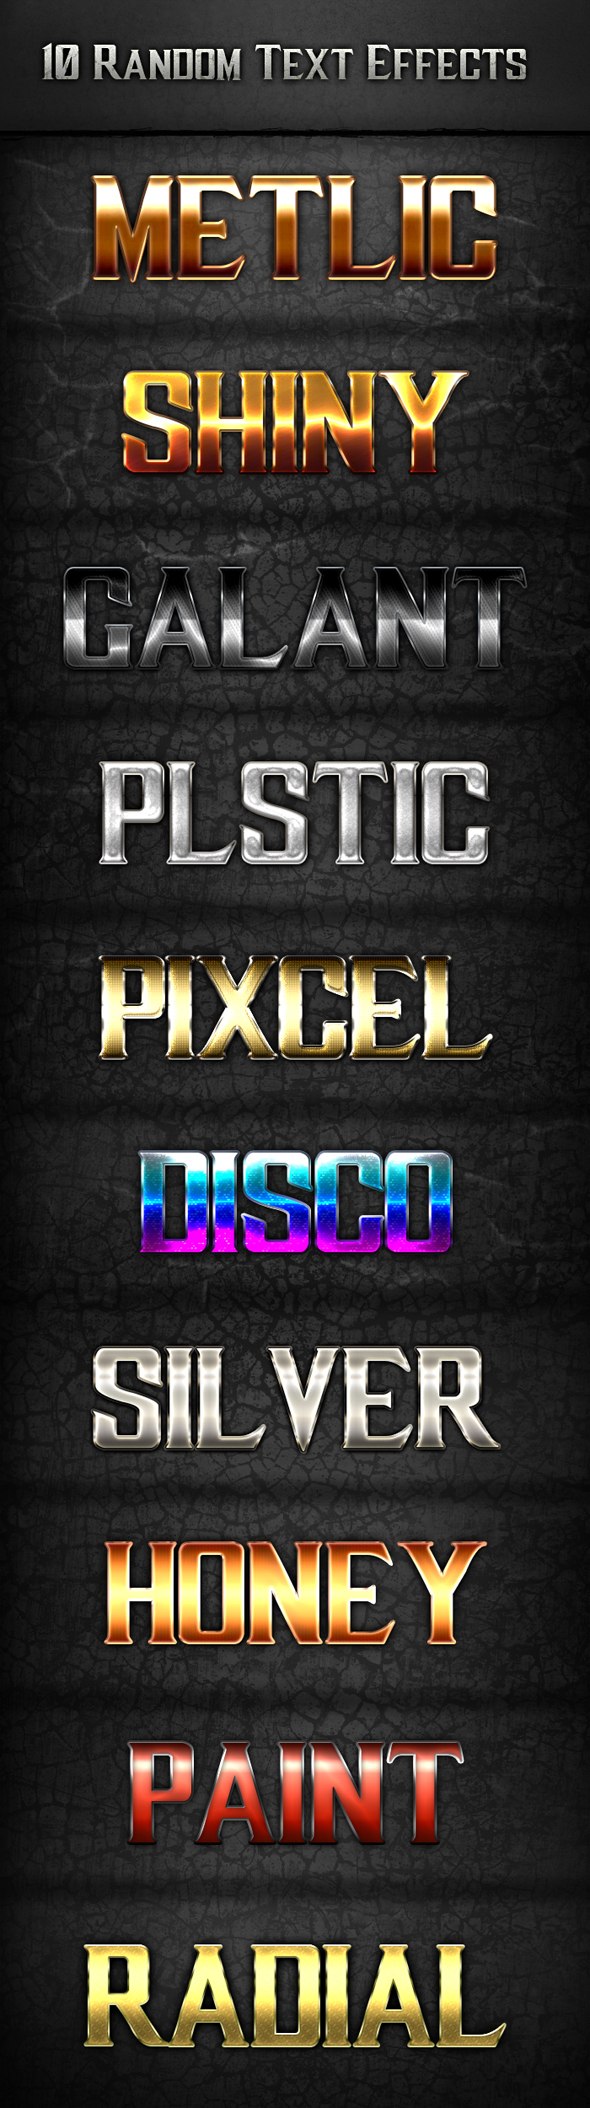 10 Random Text Effects - Text Effects Styles